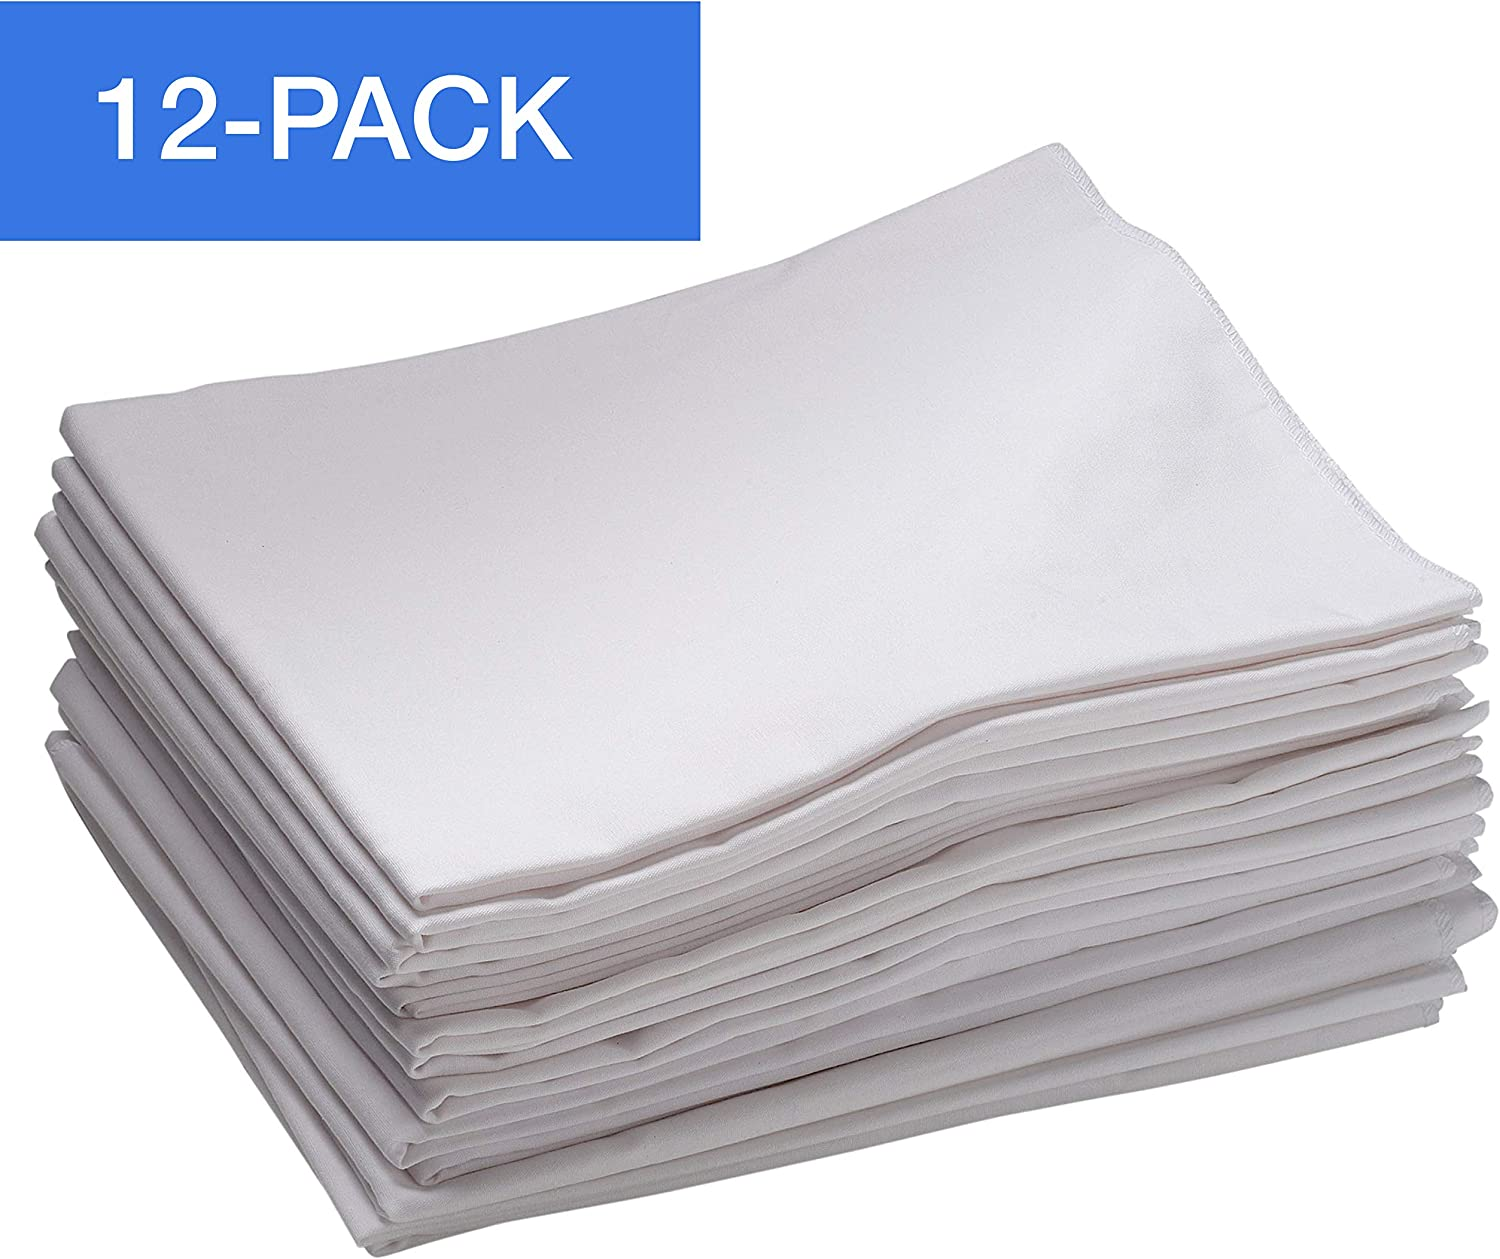 "ECR4Kids 12-Pack Toddler Cot Sheet with Elastic Straps, Toddler Size Daycare and Preschool Cot Sheets for Rest Time, 40"" x 21.75"" – White"